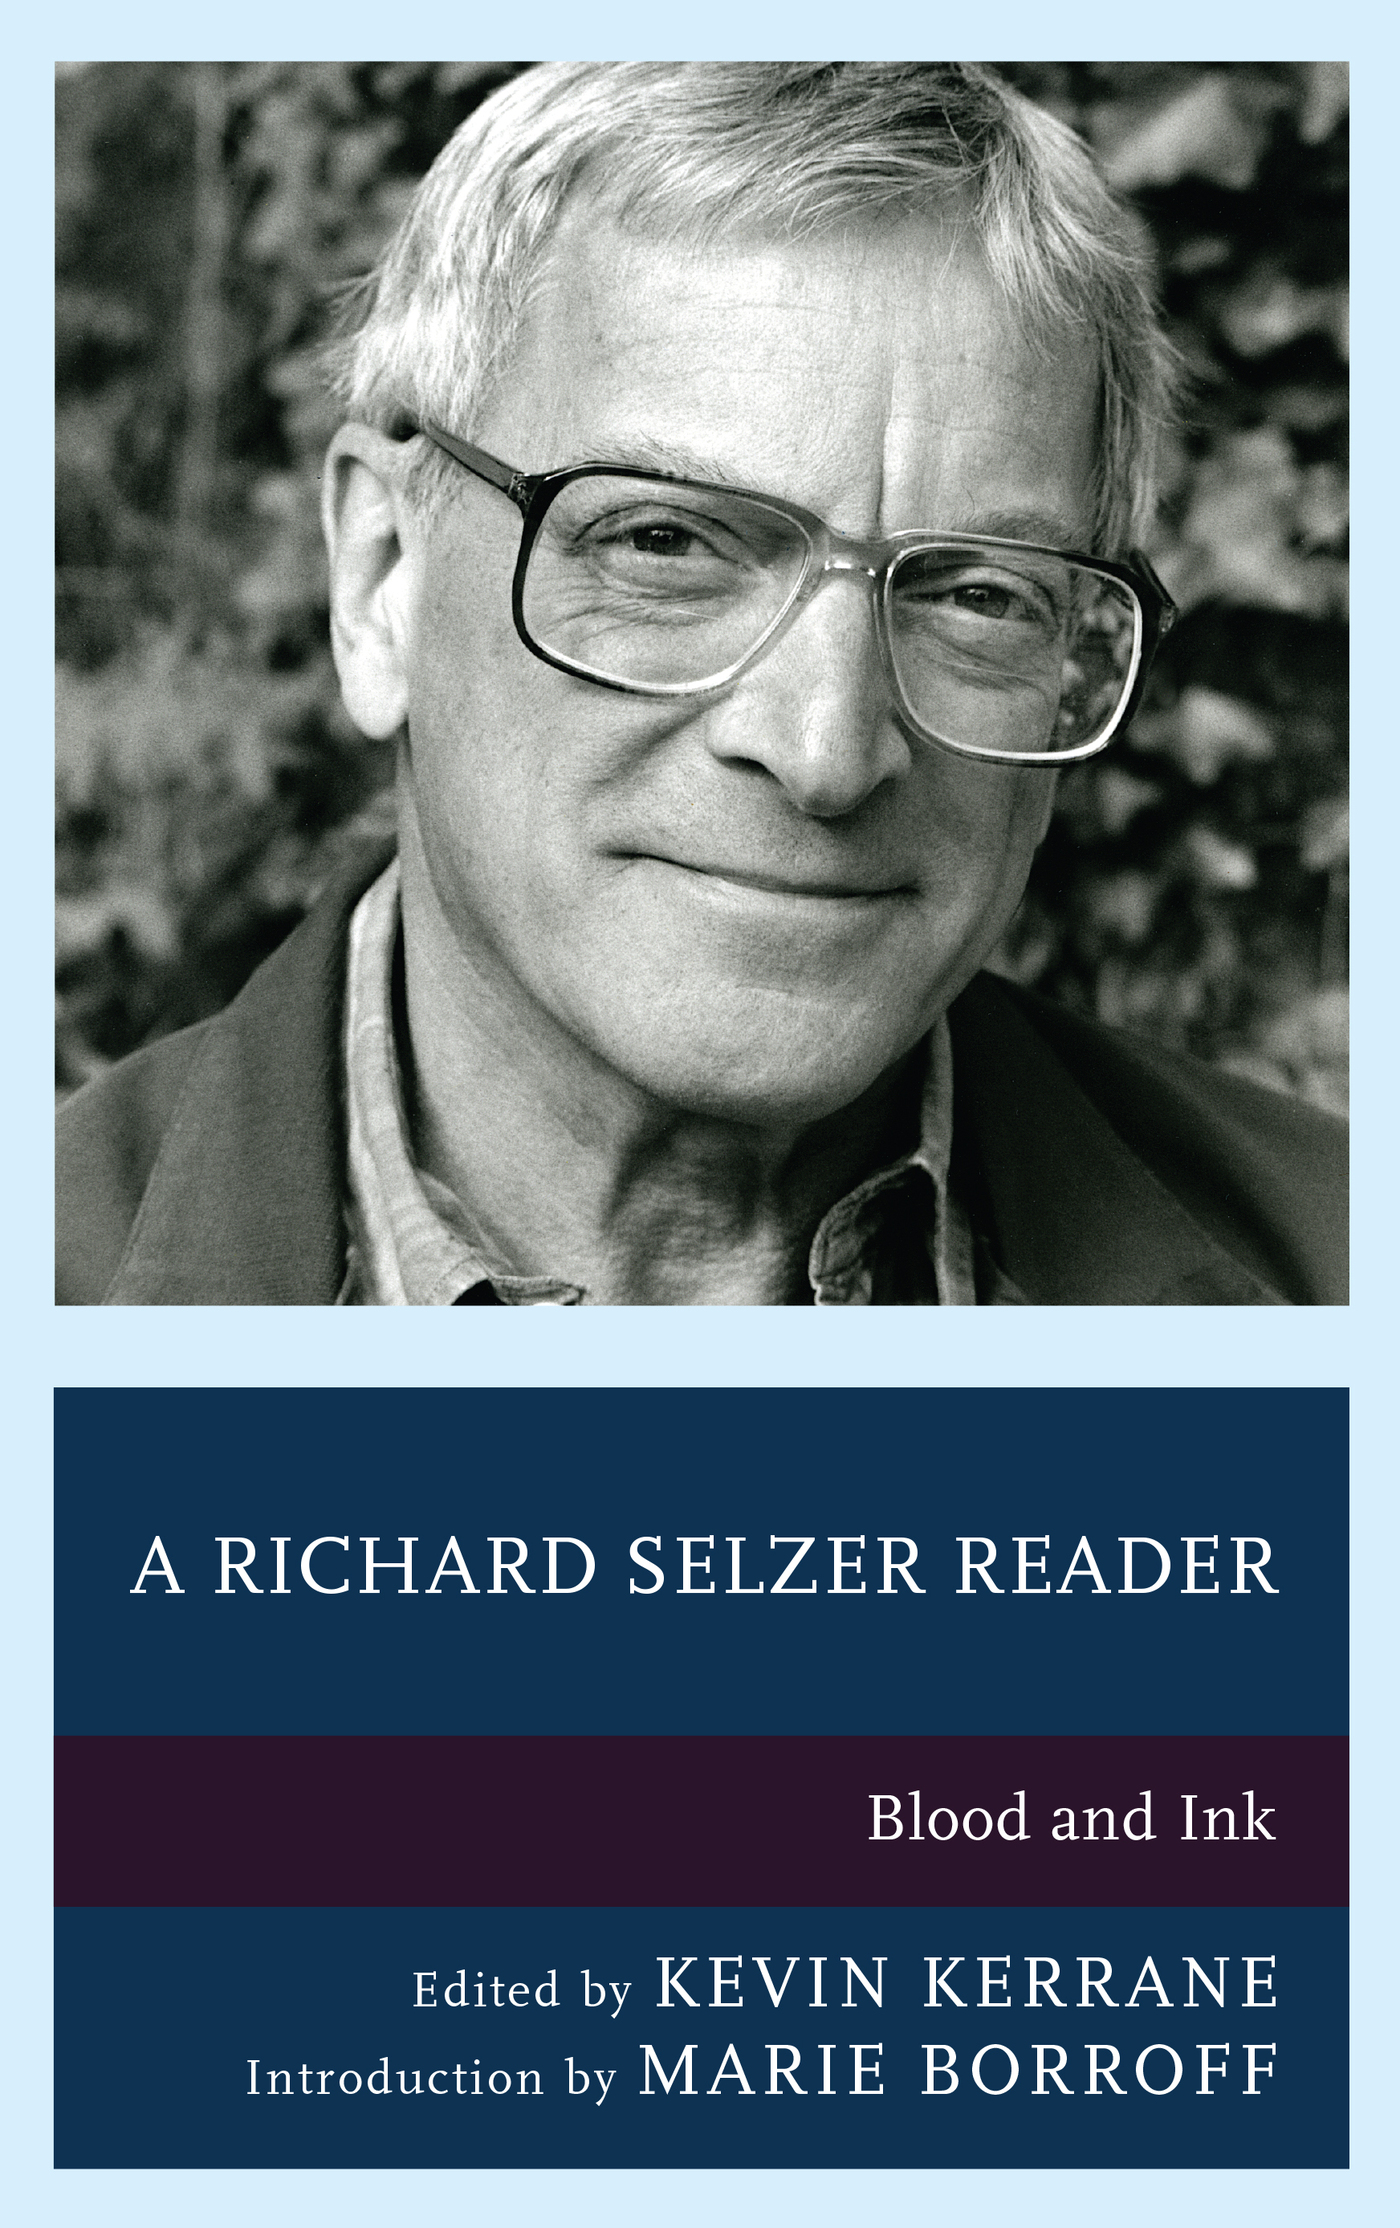 richard selzer essays Allen richard selzer (june 24, 1928 – june 15, 2016) was an american surgeon and author with selzer's stories and essays being a mainstay of the curriculum.